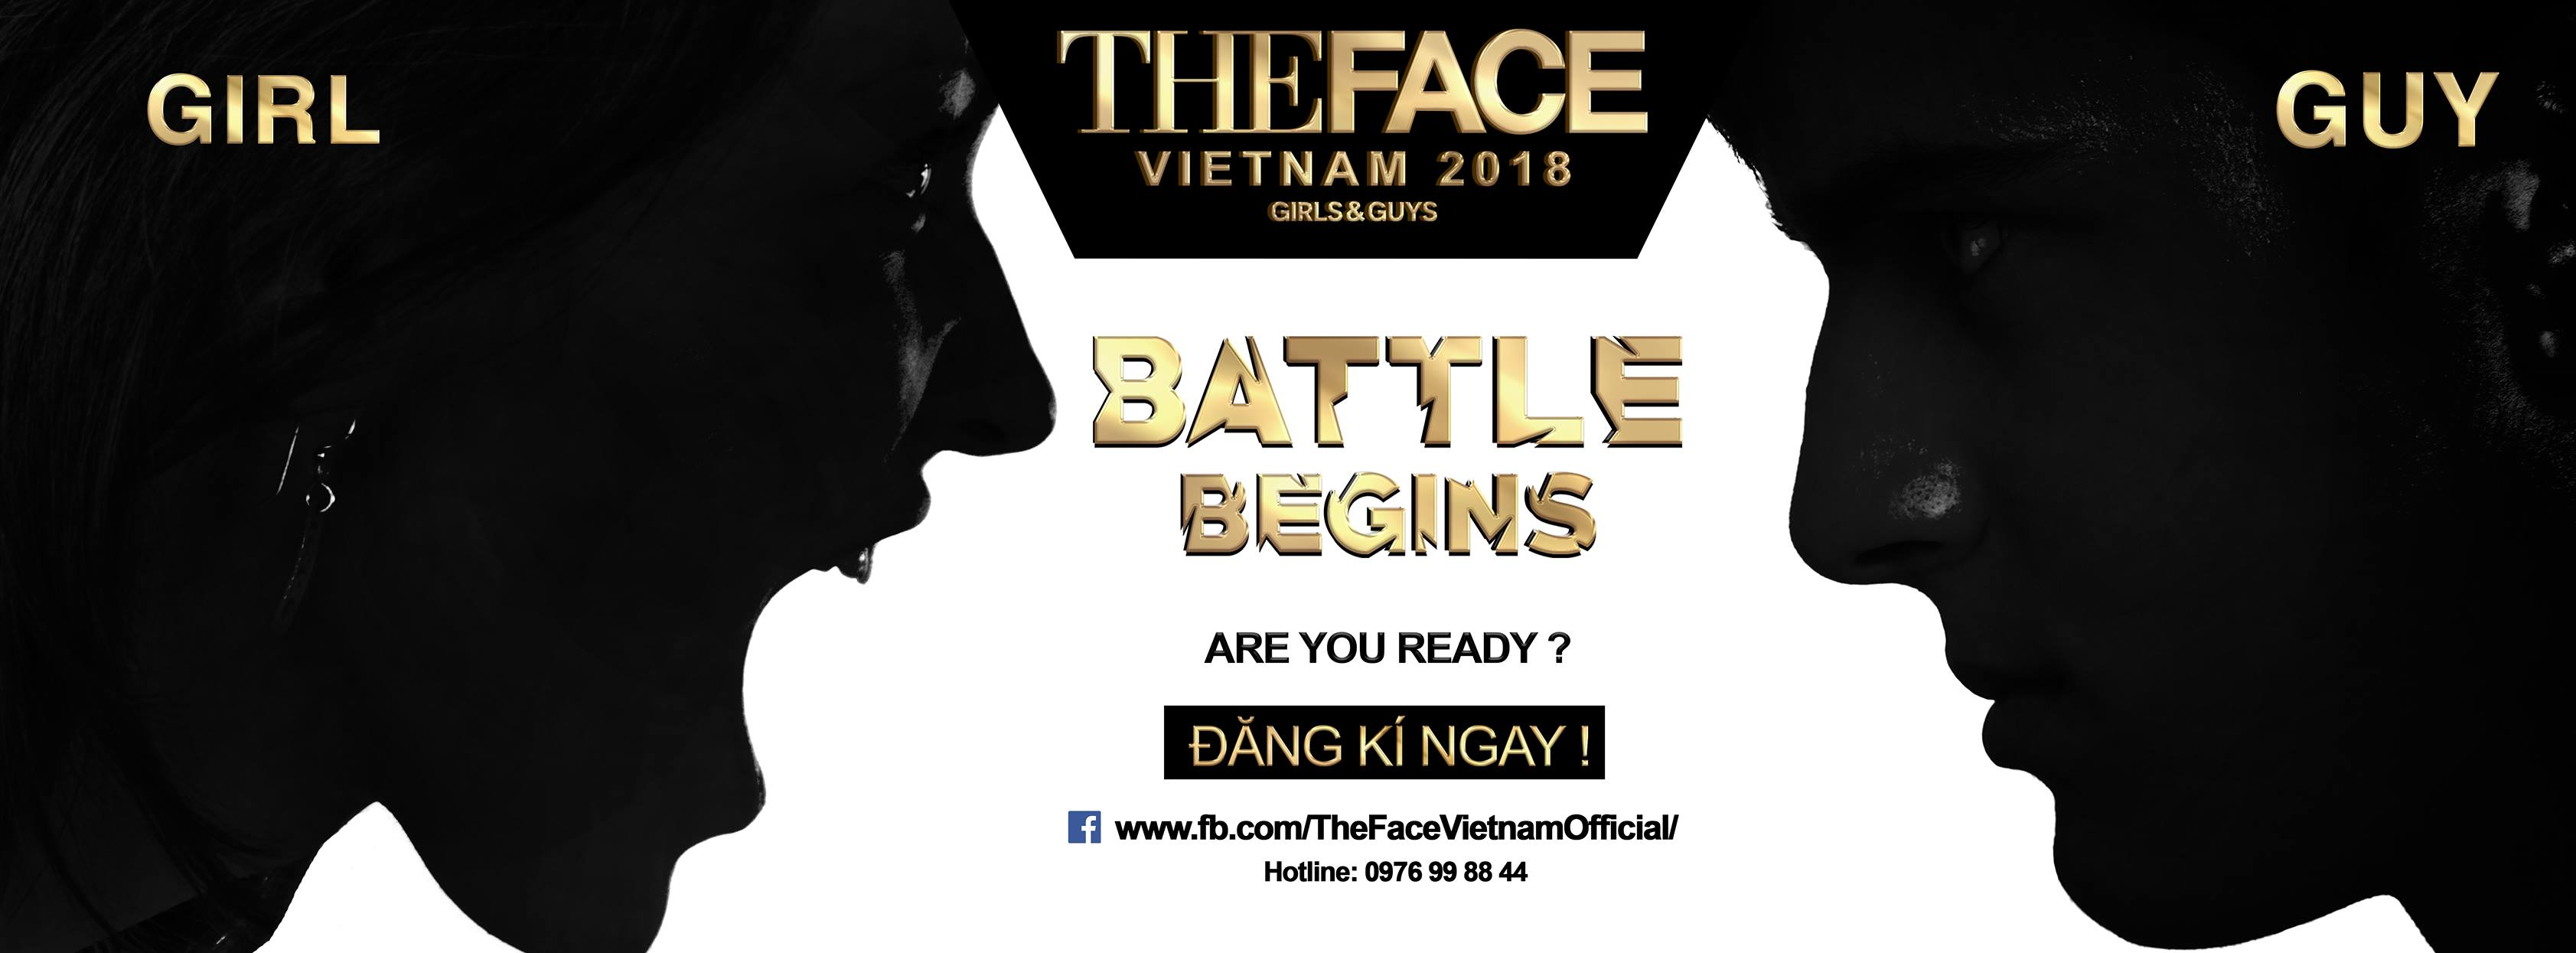 TheFaceVietnamOfficial